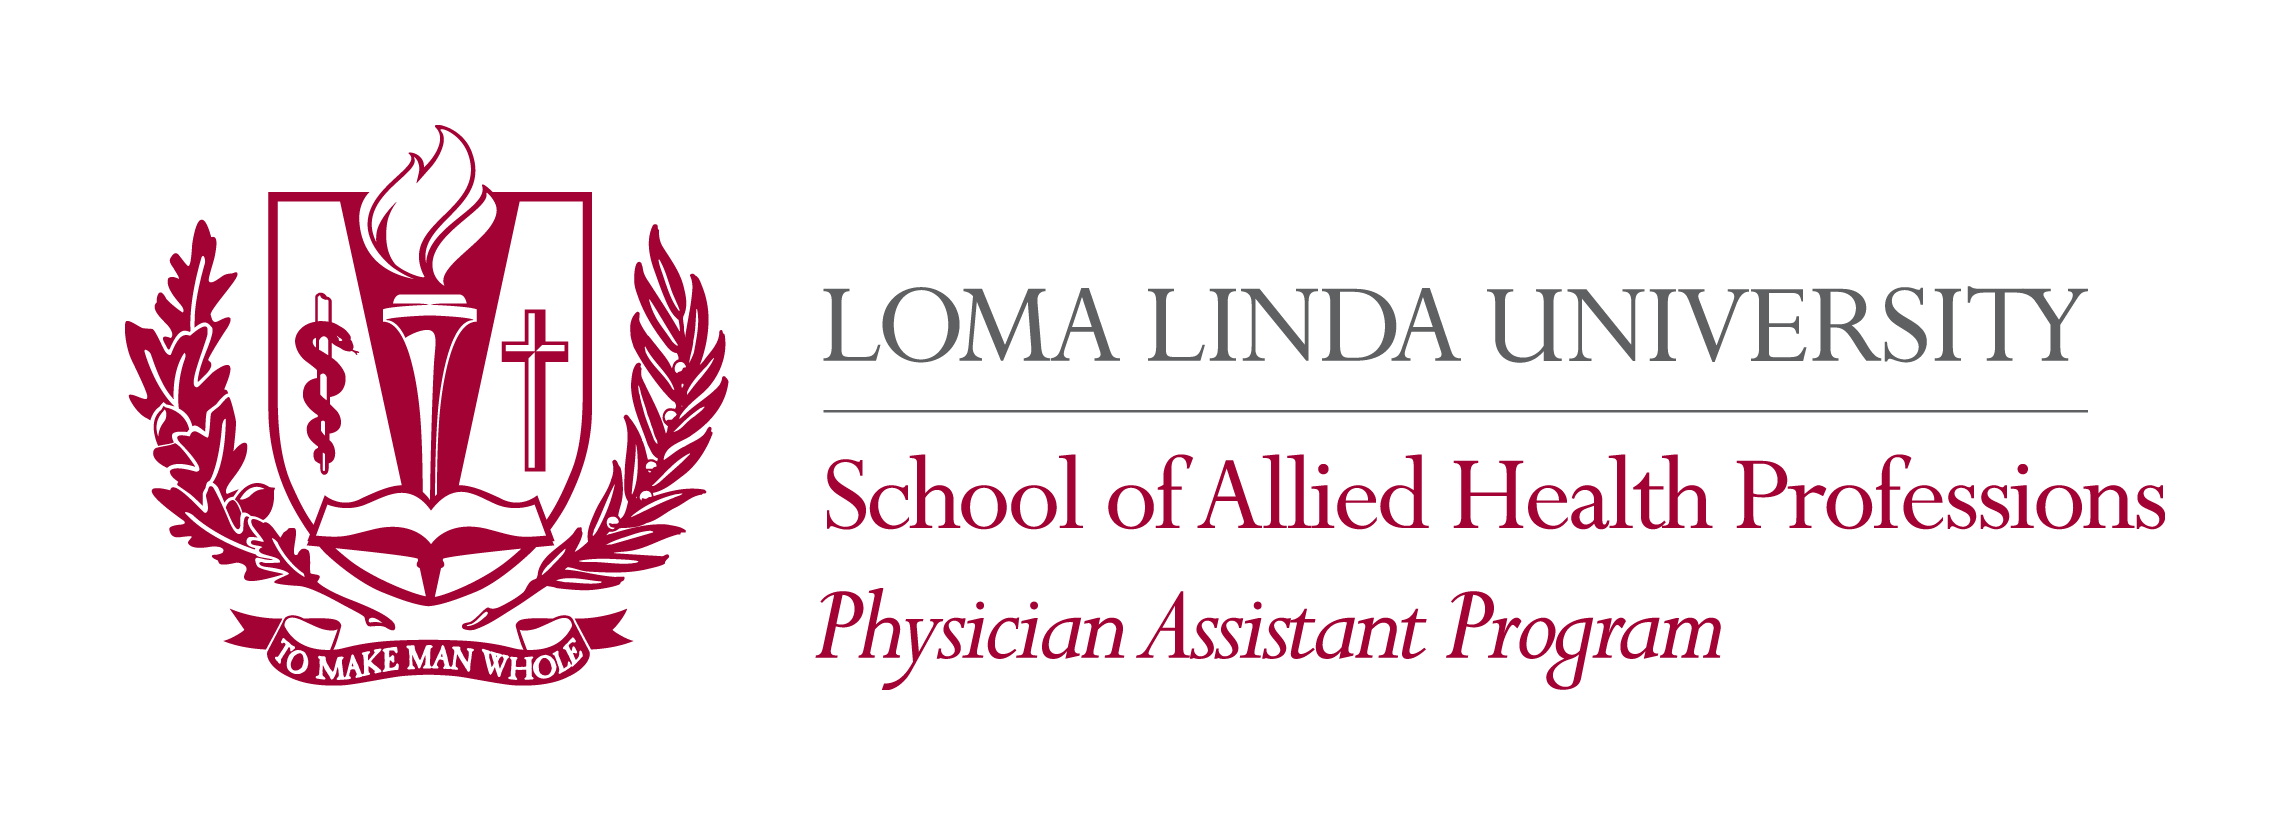 Loma Linda University Department of Physician Assistant Sciences